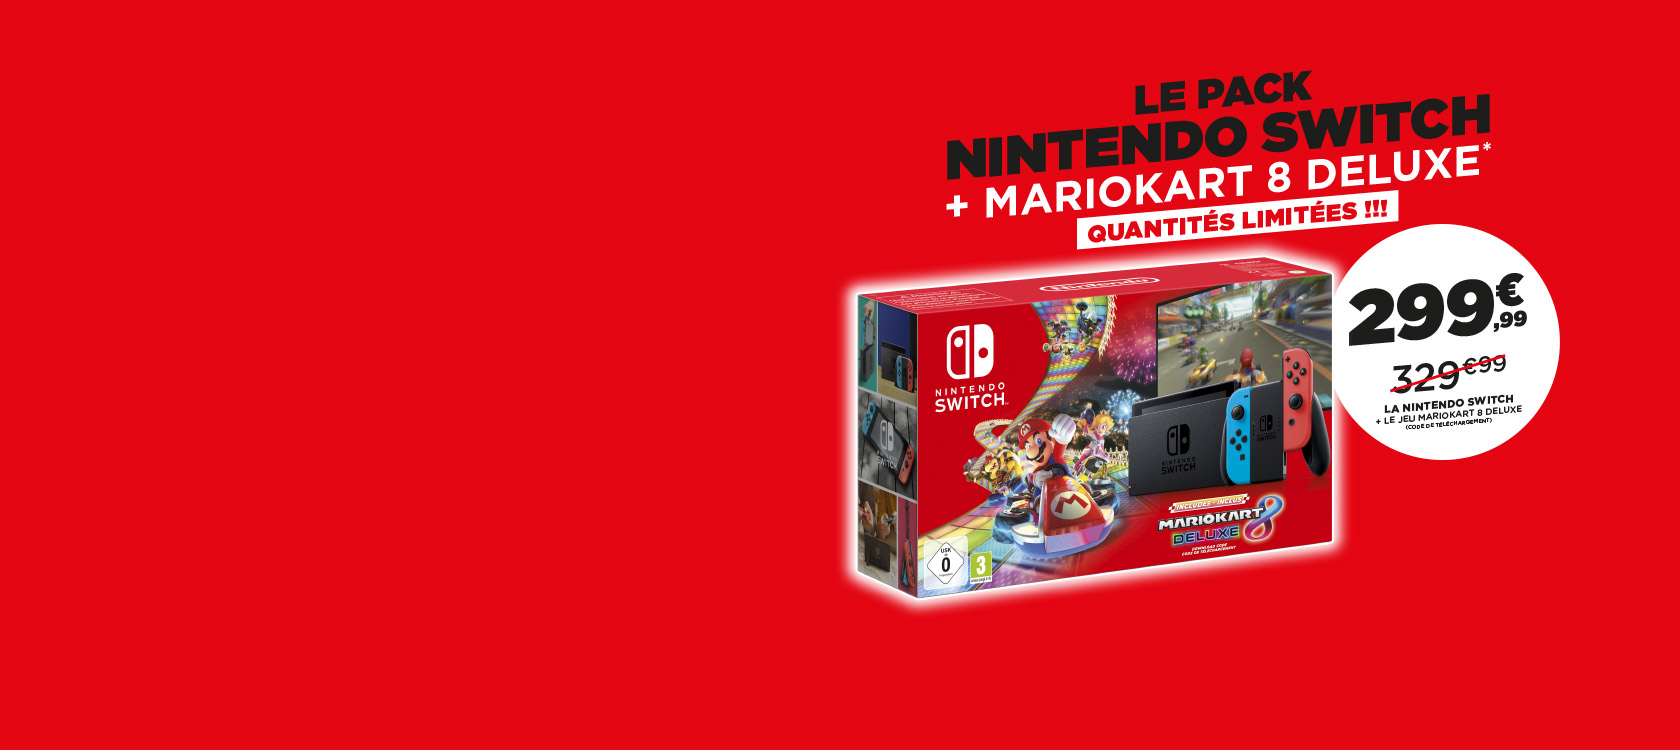 https://www.micromania.fr/on/demandware.static/-/Sites-Micromania-Library/default/dwcc4c3d9e/Herocarousel/large/switch-mario201912-background-desktop-normal.jpg